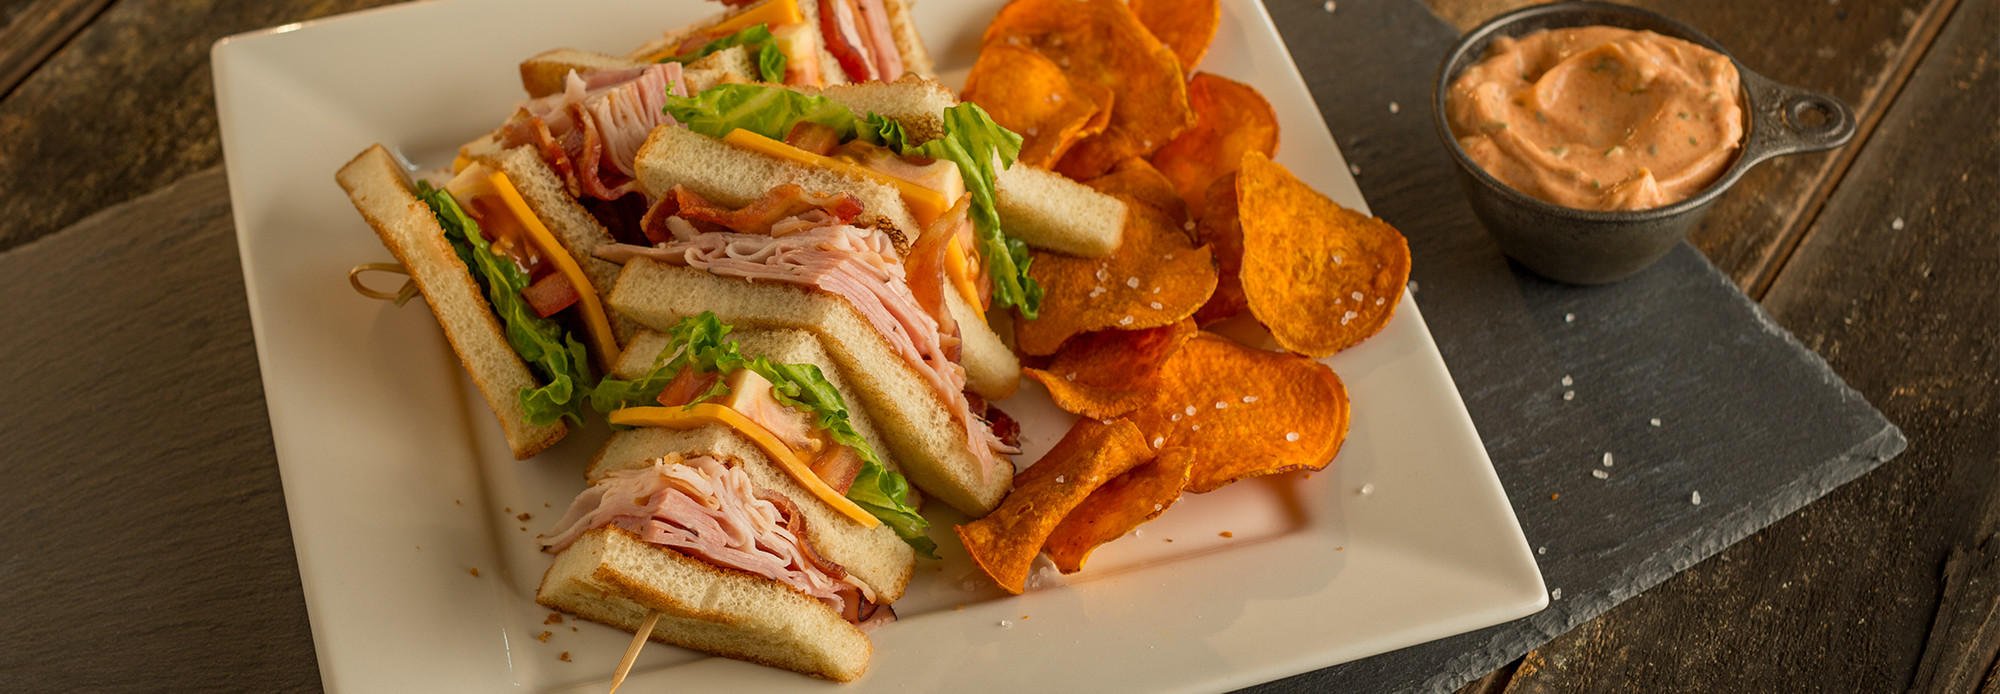 Products Image, Turkey Club